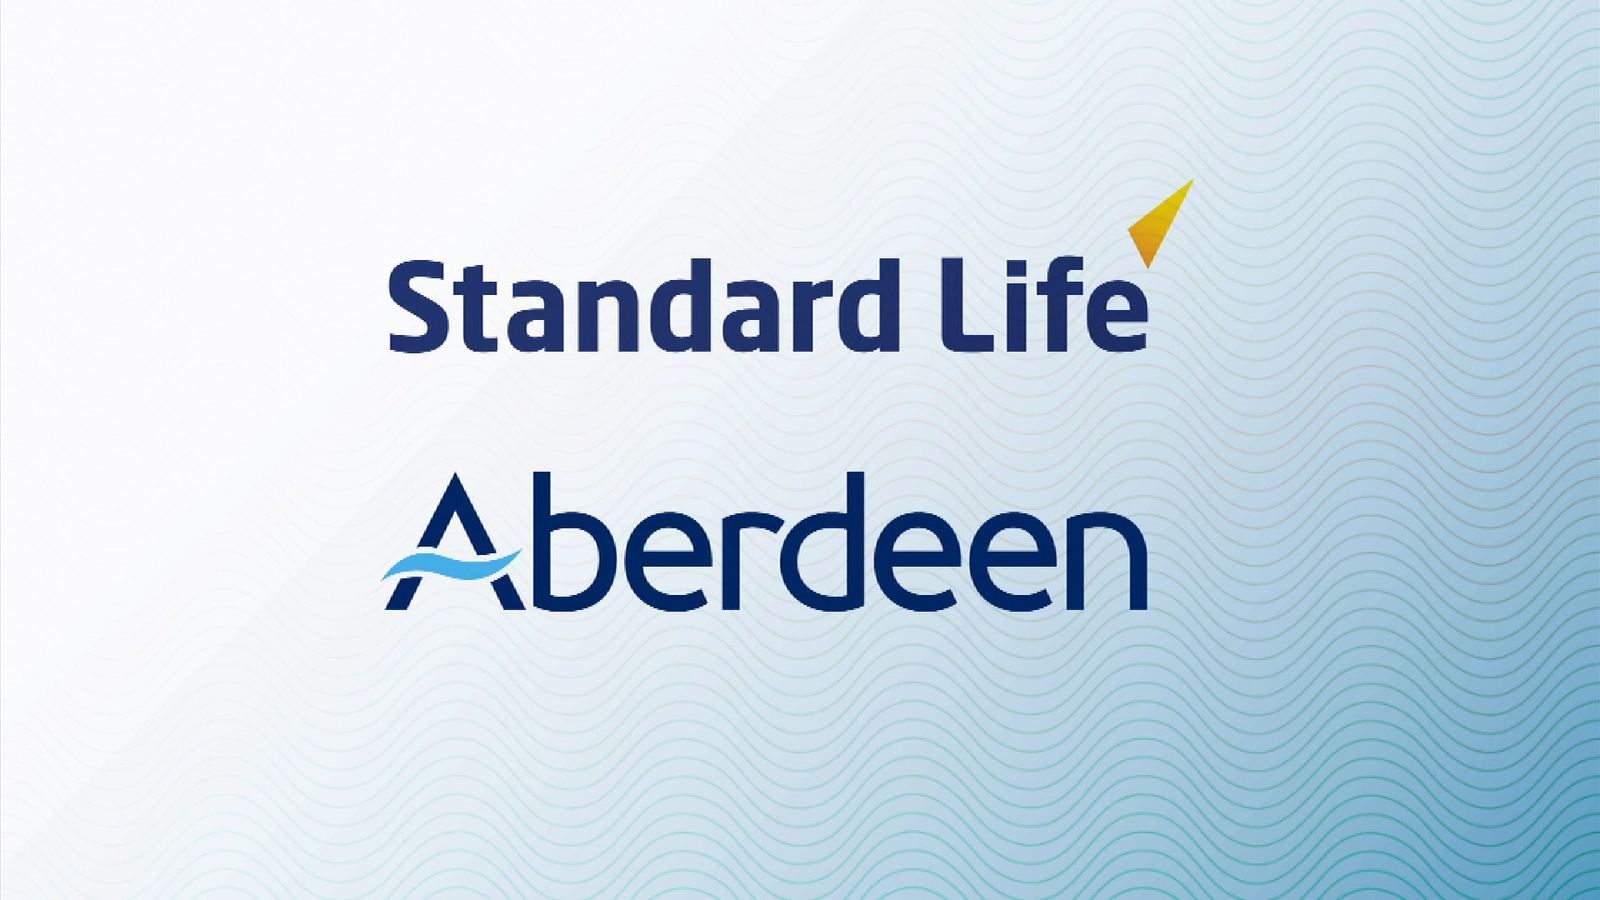 Standard Life announces 800 job cuts in Aberdeen merger